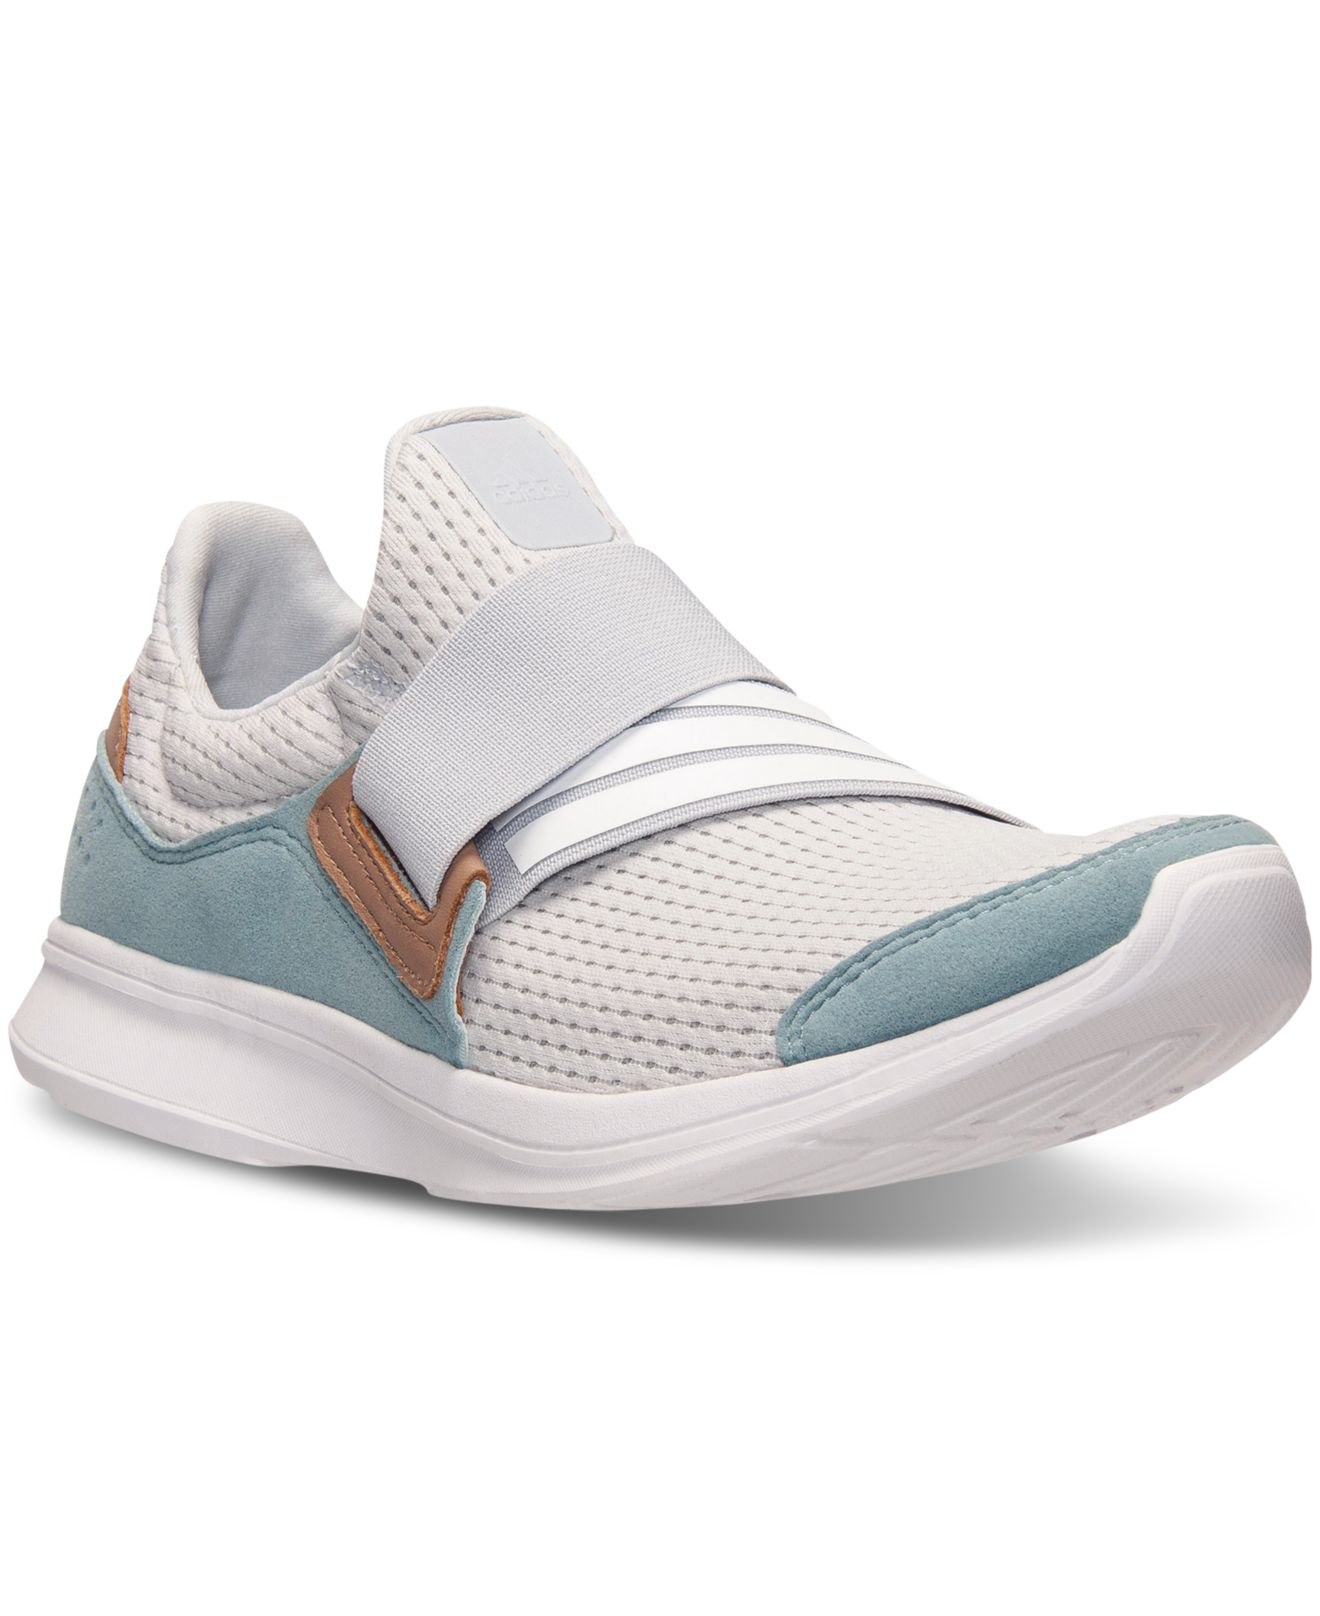 Lyst - adidas Originals Women s Lite Slip-on Running Sneakers From ... 56db6452f